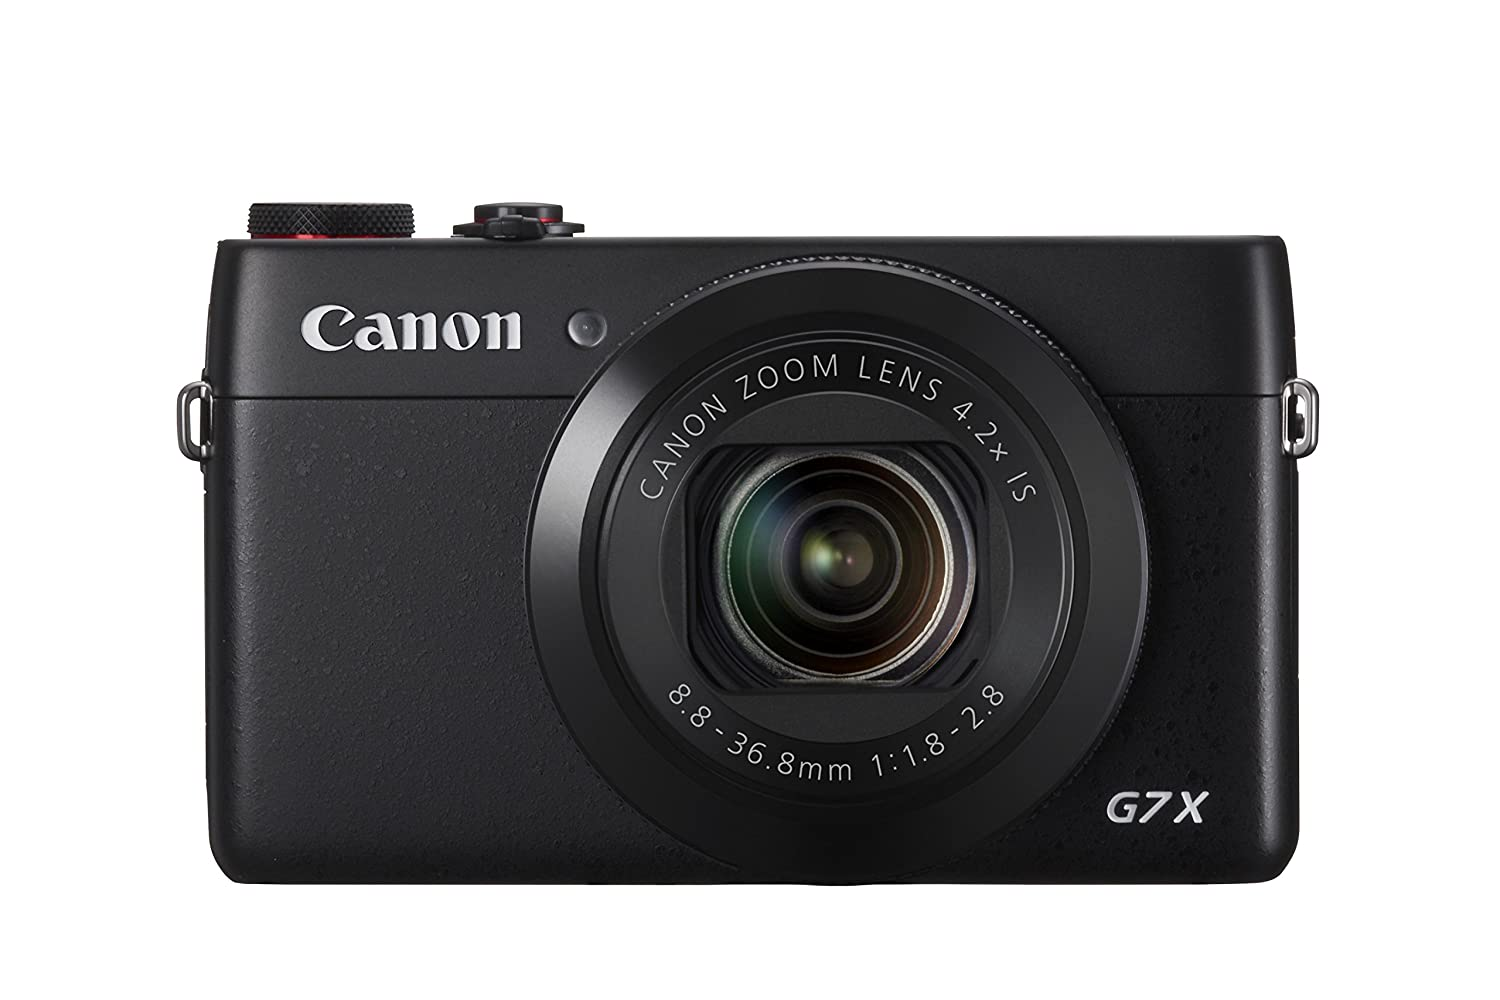 Canon Powershot G7 X Digital Camera Wi Fi Enabled Rc Car Circuit Exposed Flickr Photo Sharing